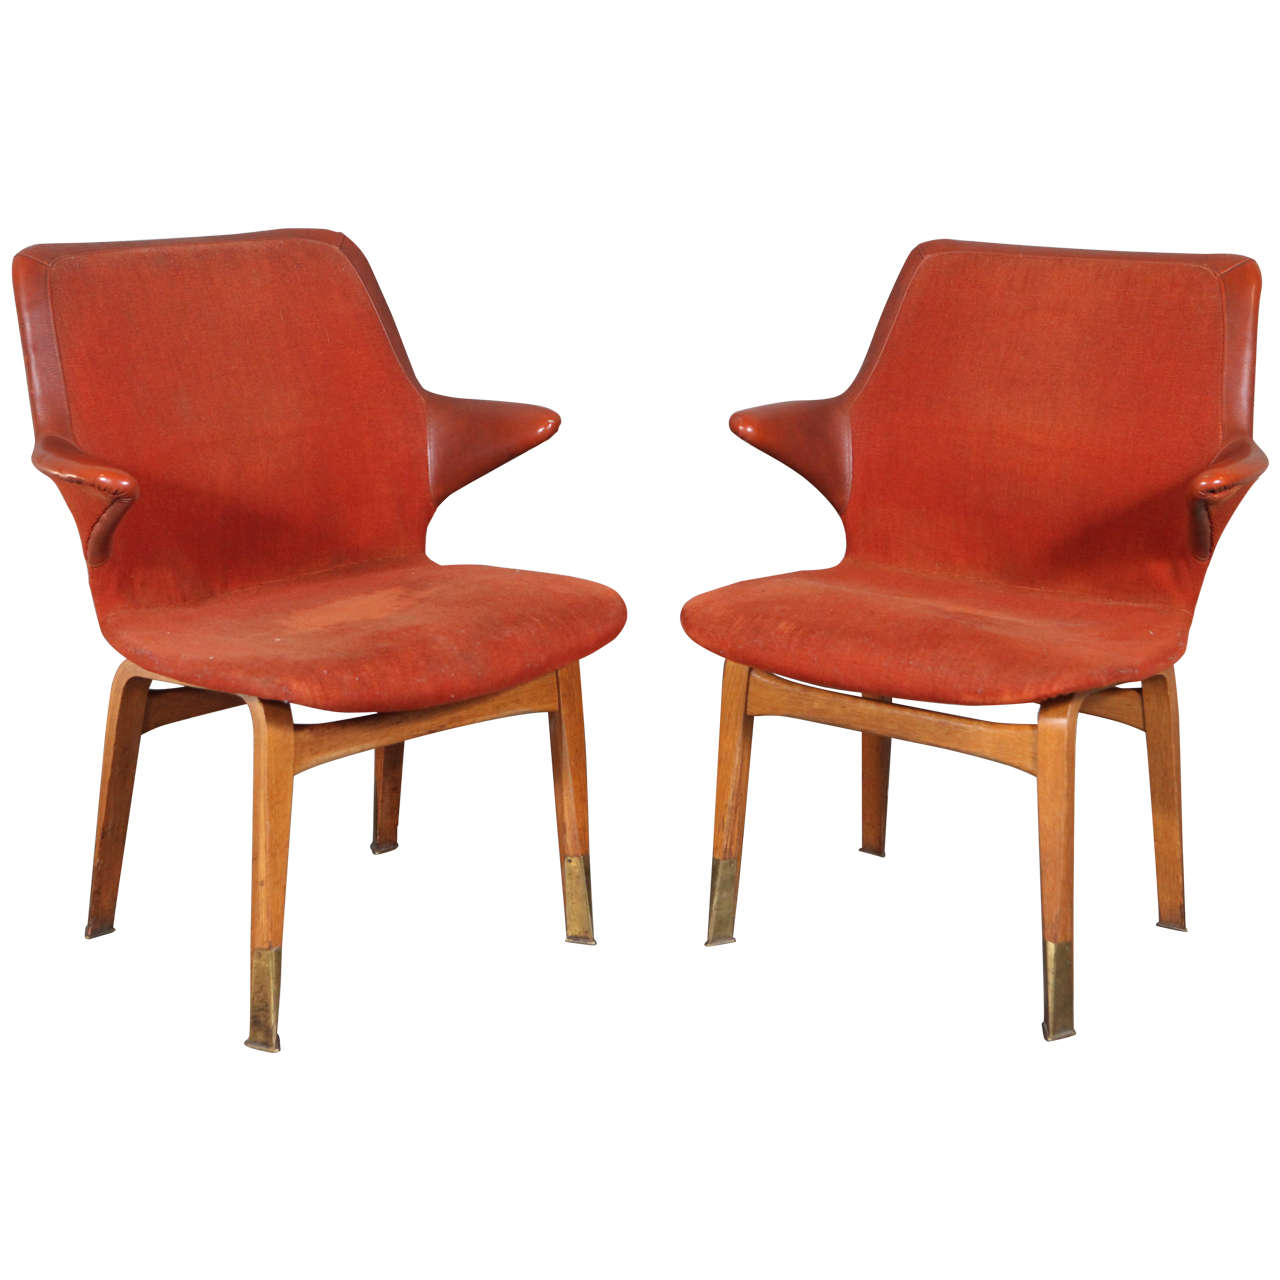 pair of ilmari tapiovaara 39 lulu 39 chairs for sale at 1stdibs. Black Bedroom Furniture Sets. Home Design Ideas